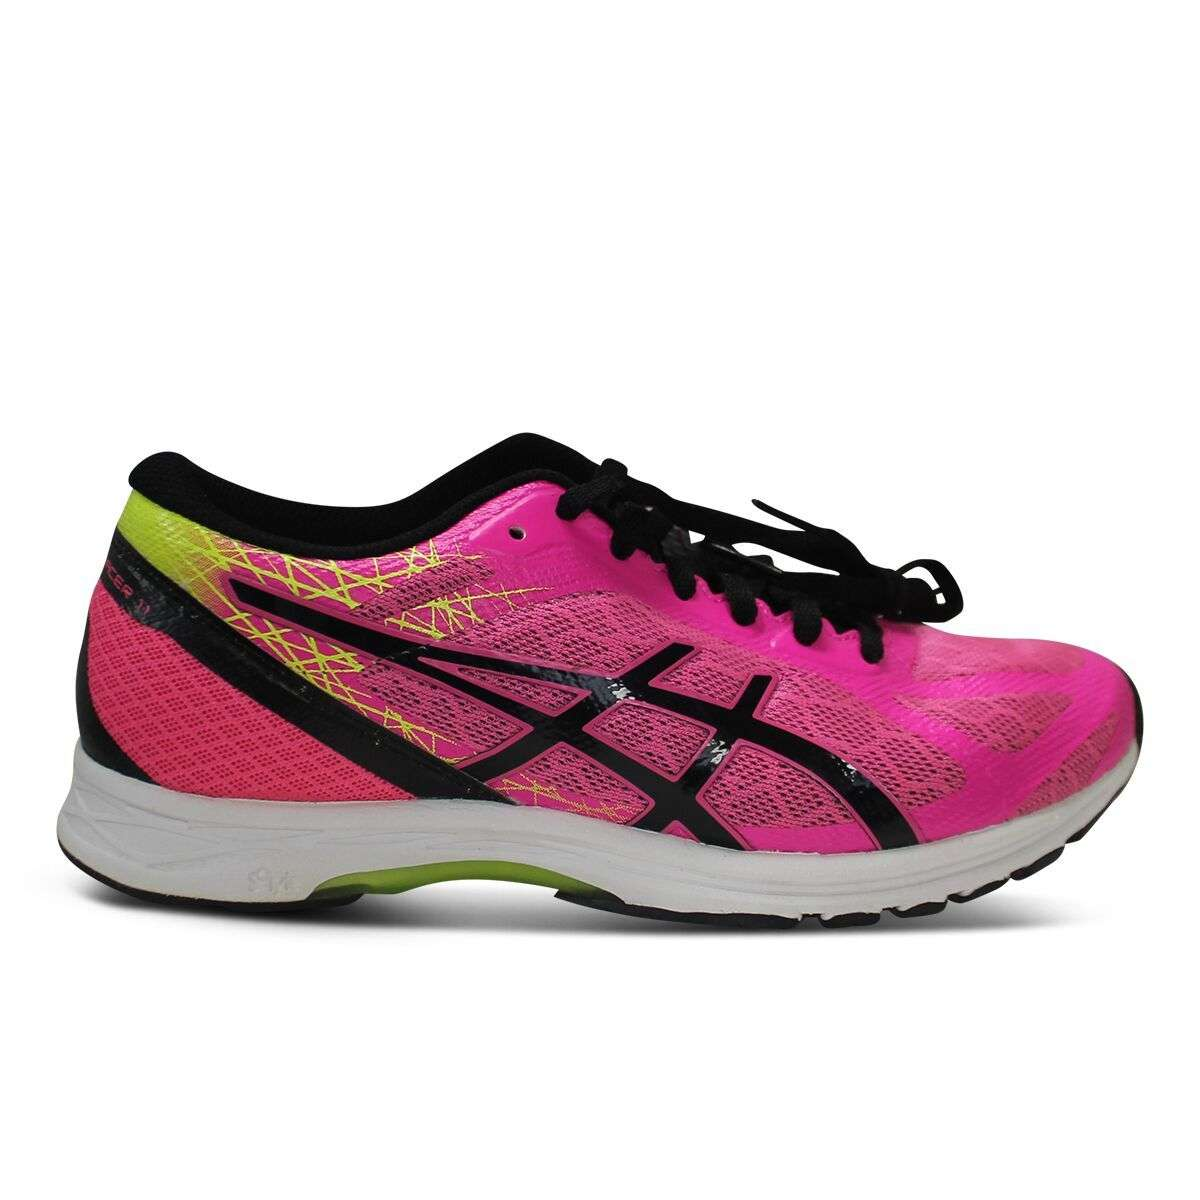 Asics Gel DS Racer 11 Women's Running Shoes